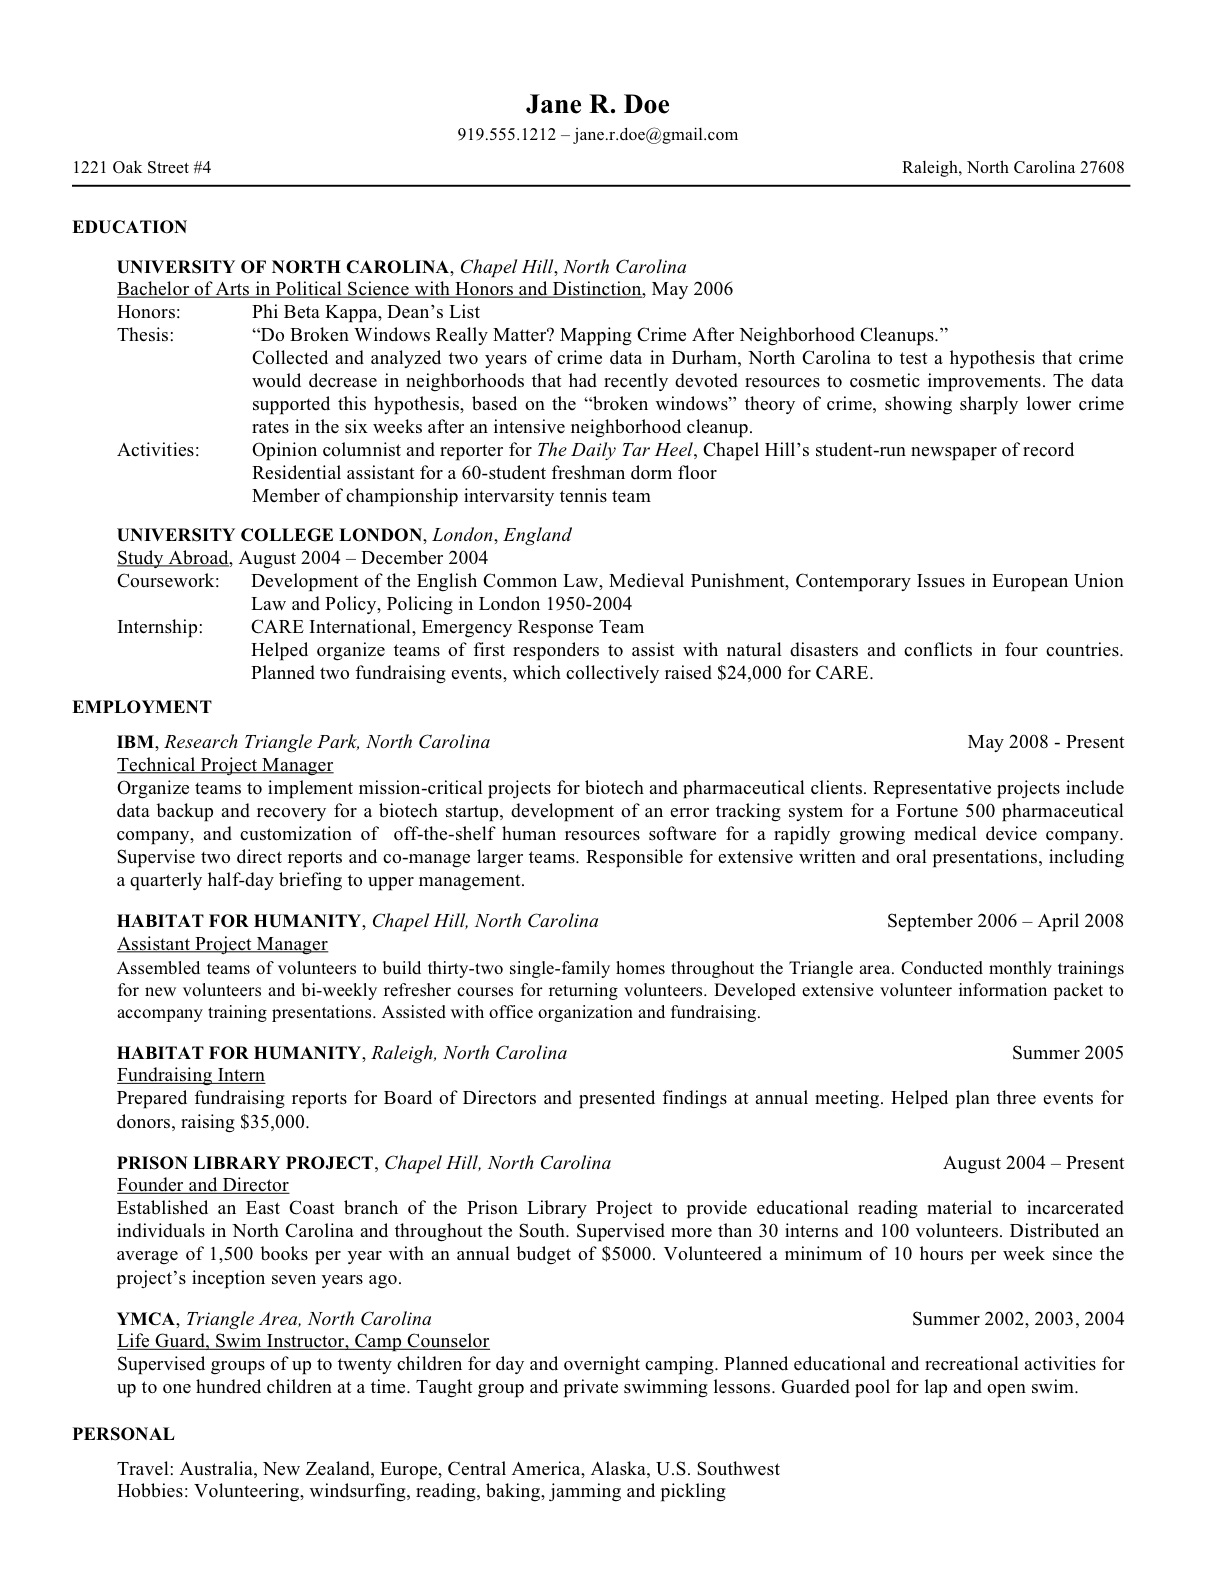 resume Law School Resume how to craft a law school application that gets you in sample janes revised resume